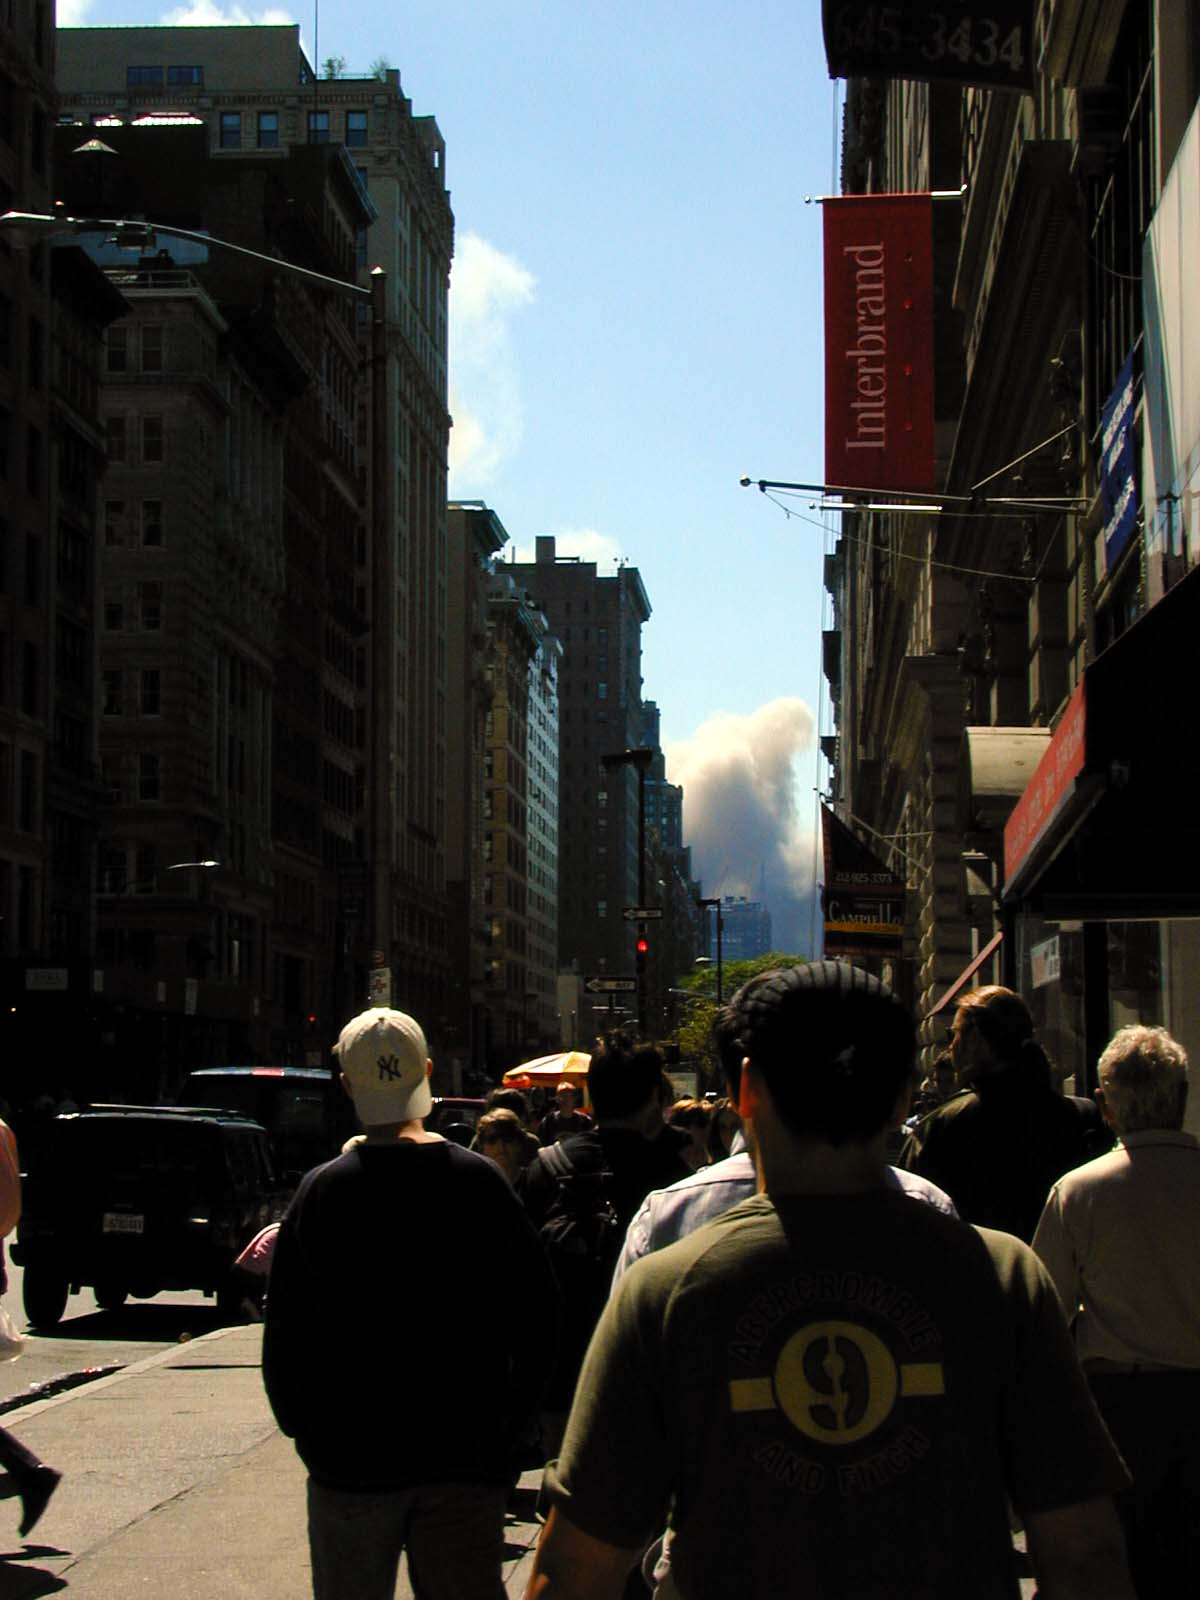 055 - 1PM - 5th ave looking south, smoke in the distance